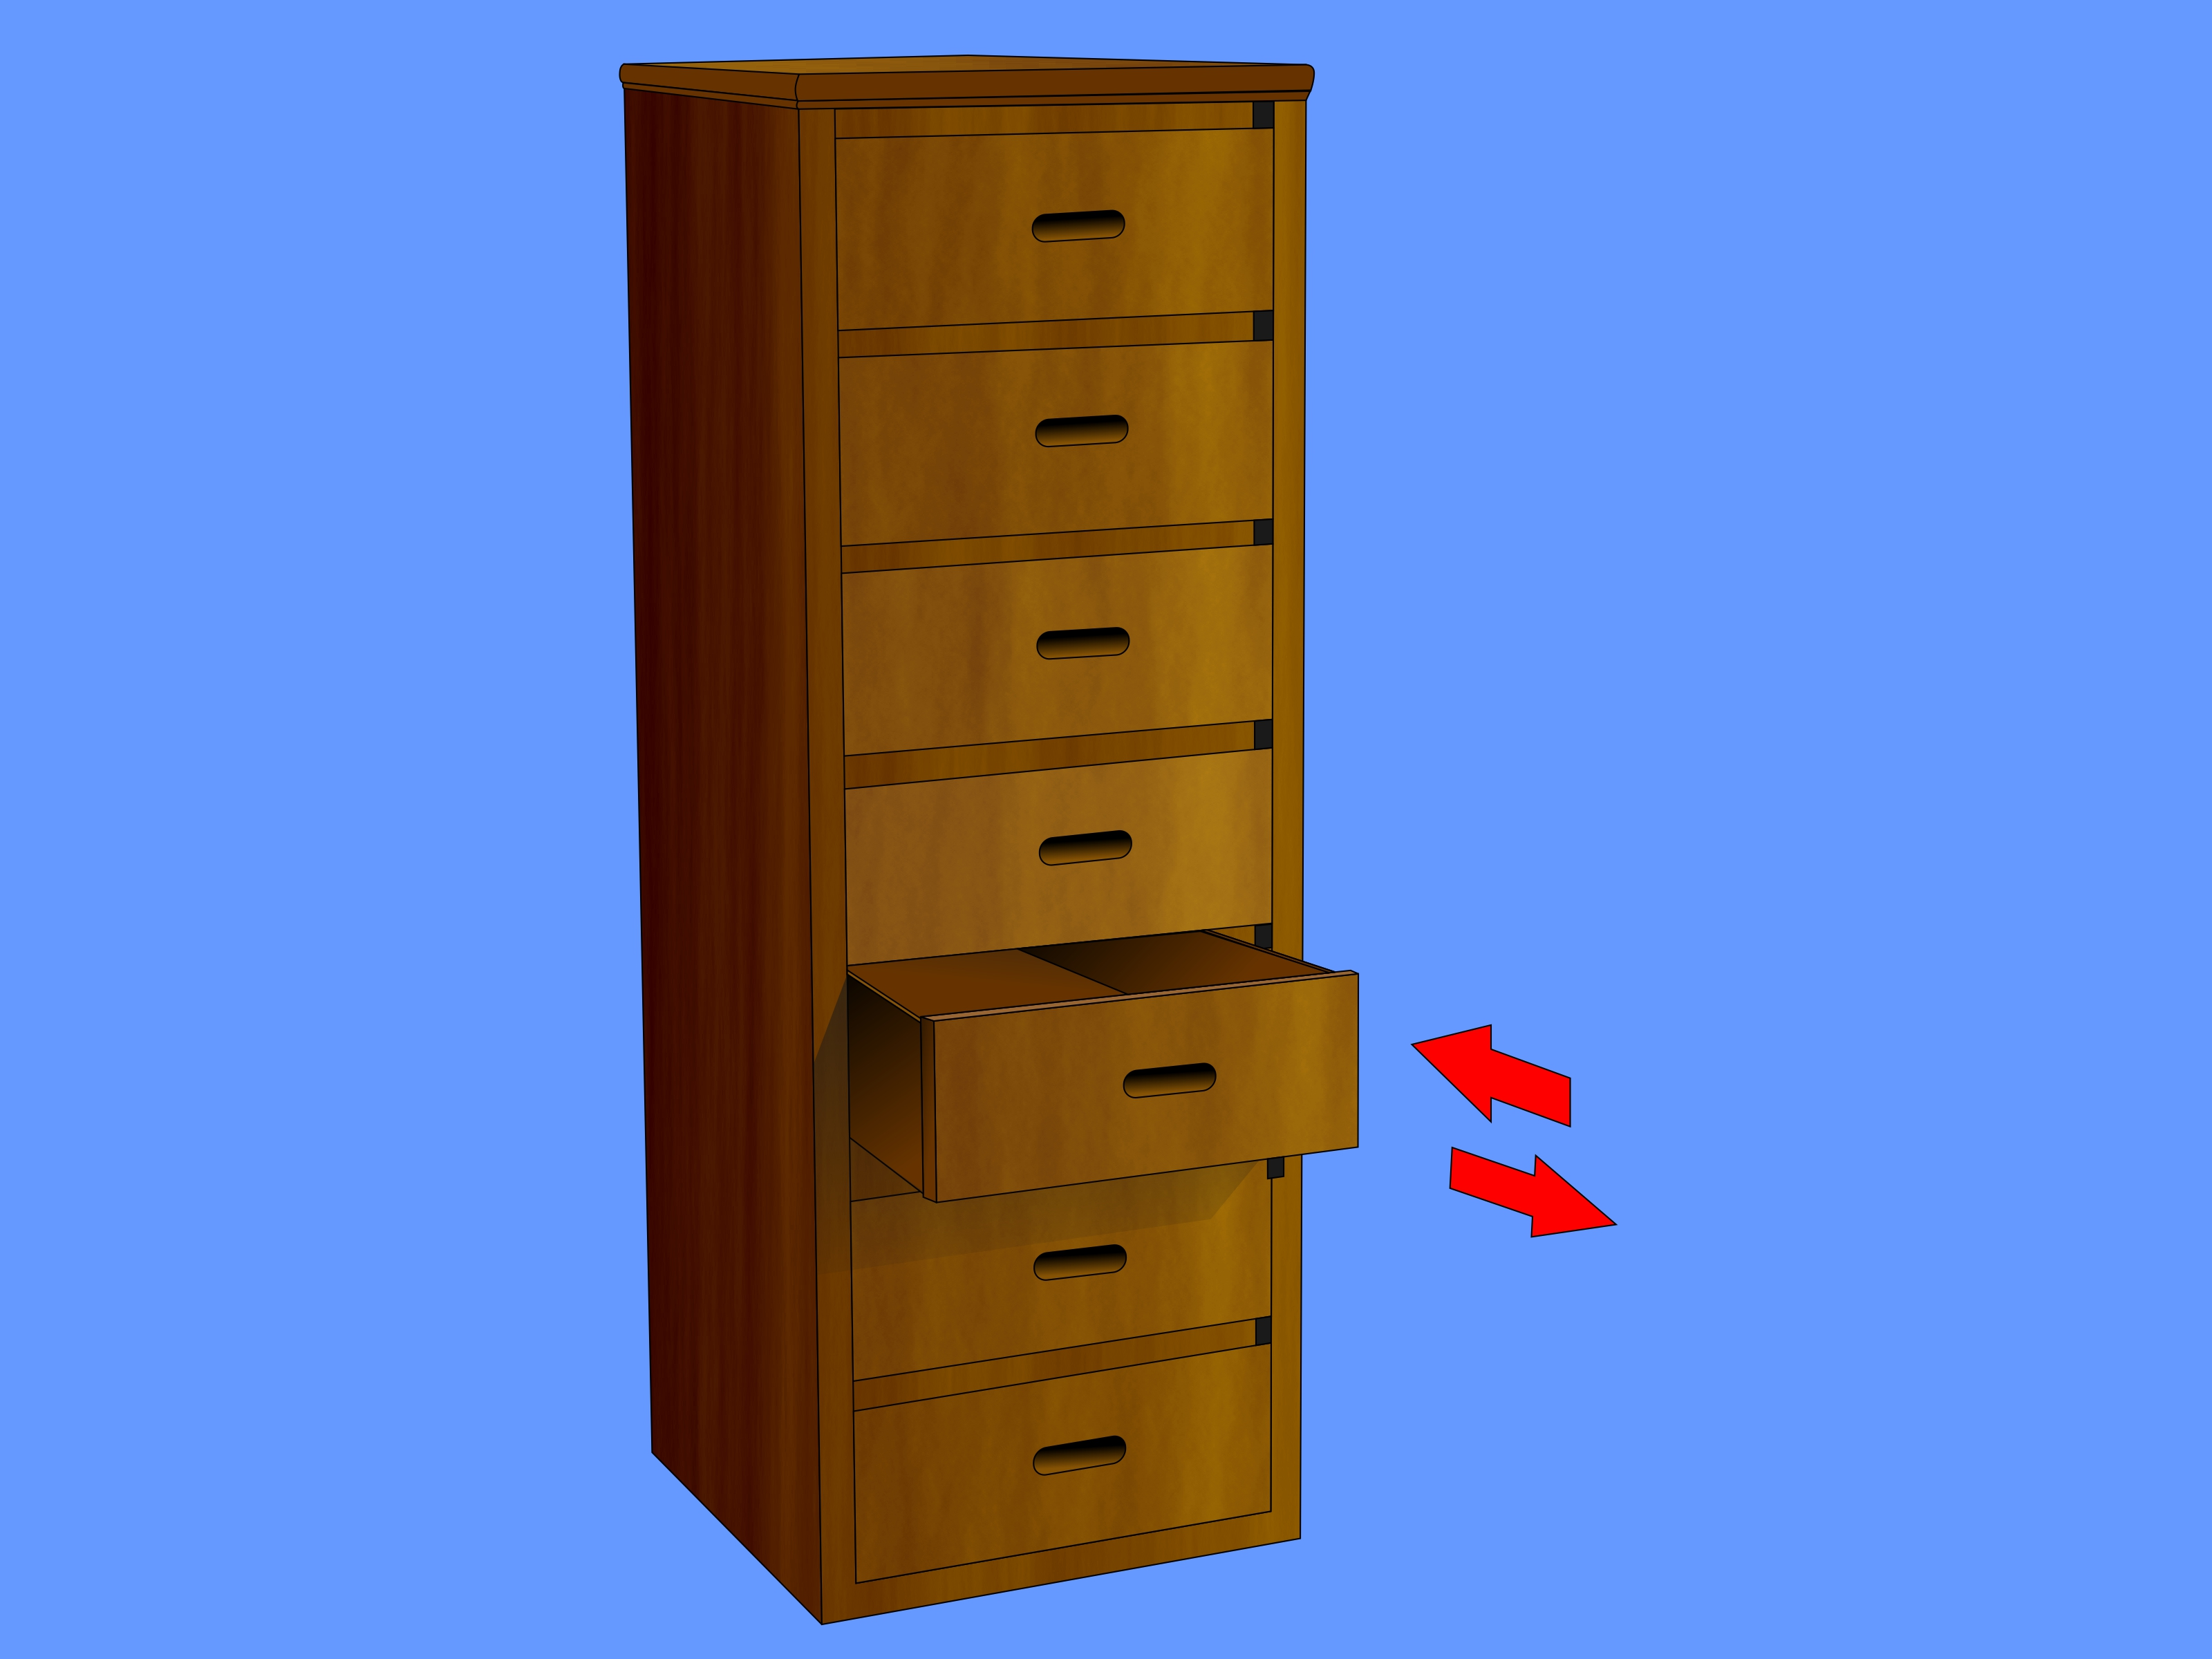 Corner Build A Tall Drawer Chest Step 8 Version 2 Tall Chest Drawers Plans Living Room Tall Chest Drawers houzz-03 Tall Chest Of Drawers